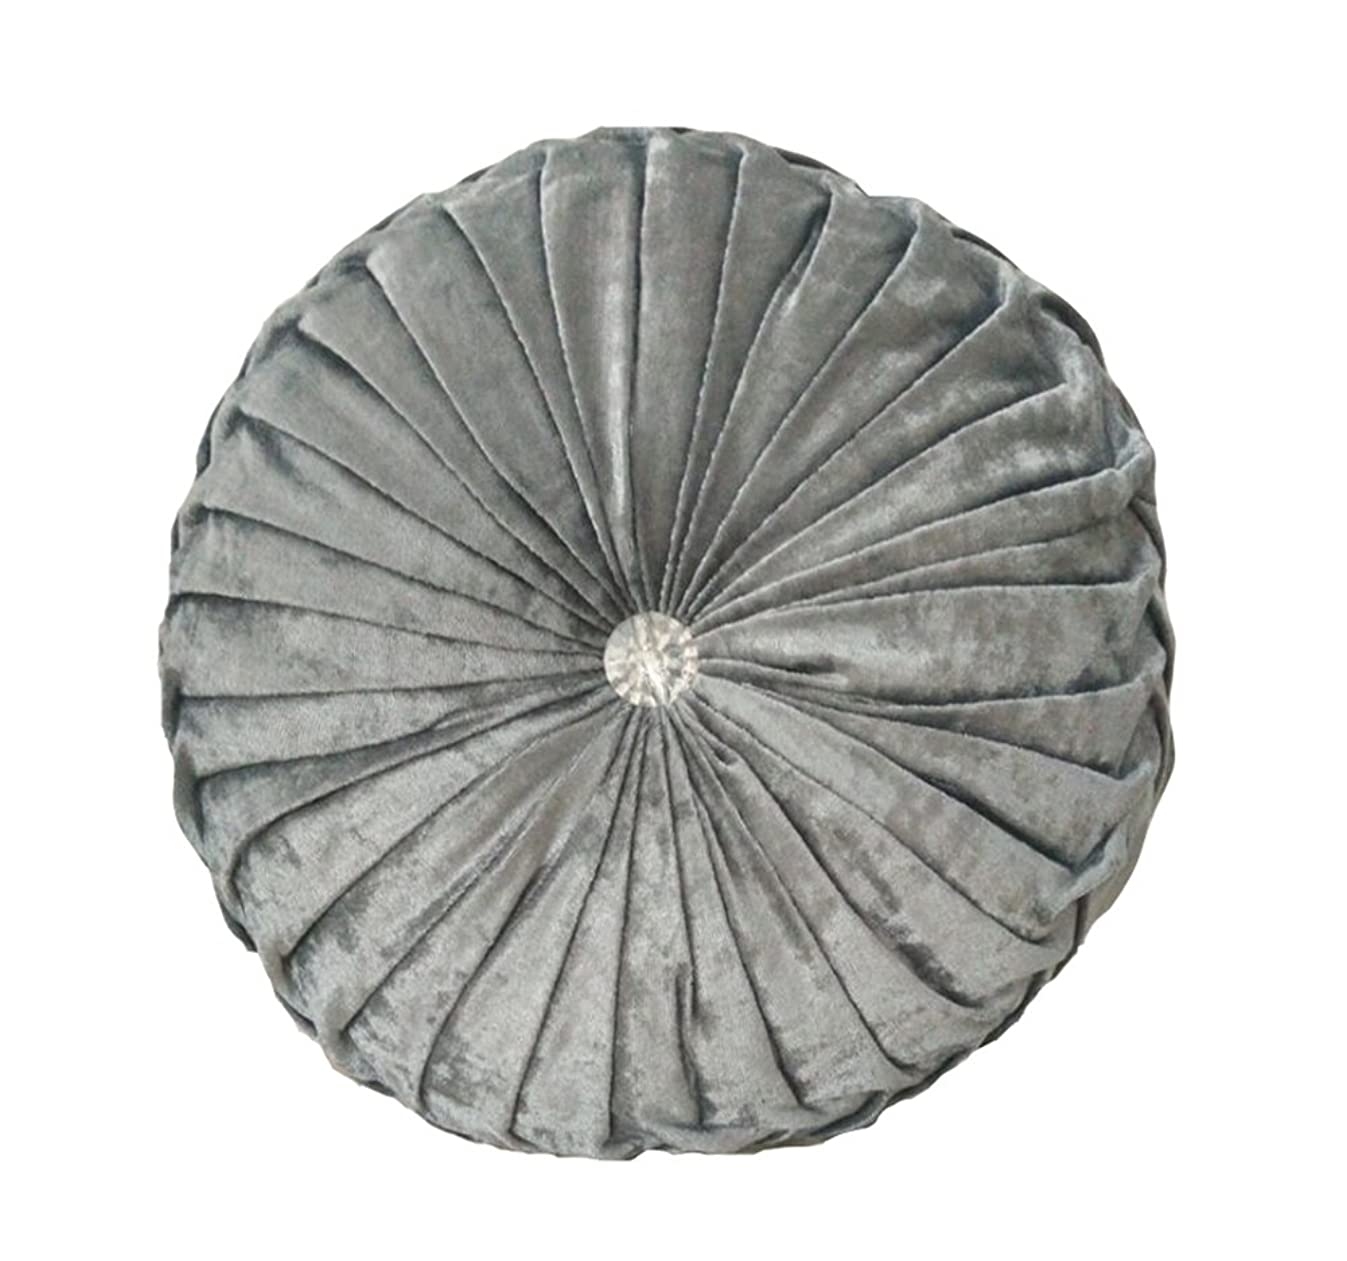 NOVWANG Round Solid Color Velvet Chair Cushion Couch Pumpkin Throw Pillow Home Decorative Floor Pillow,13.39 x 13.39,Silver Grey